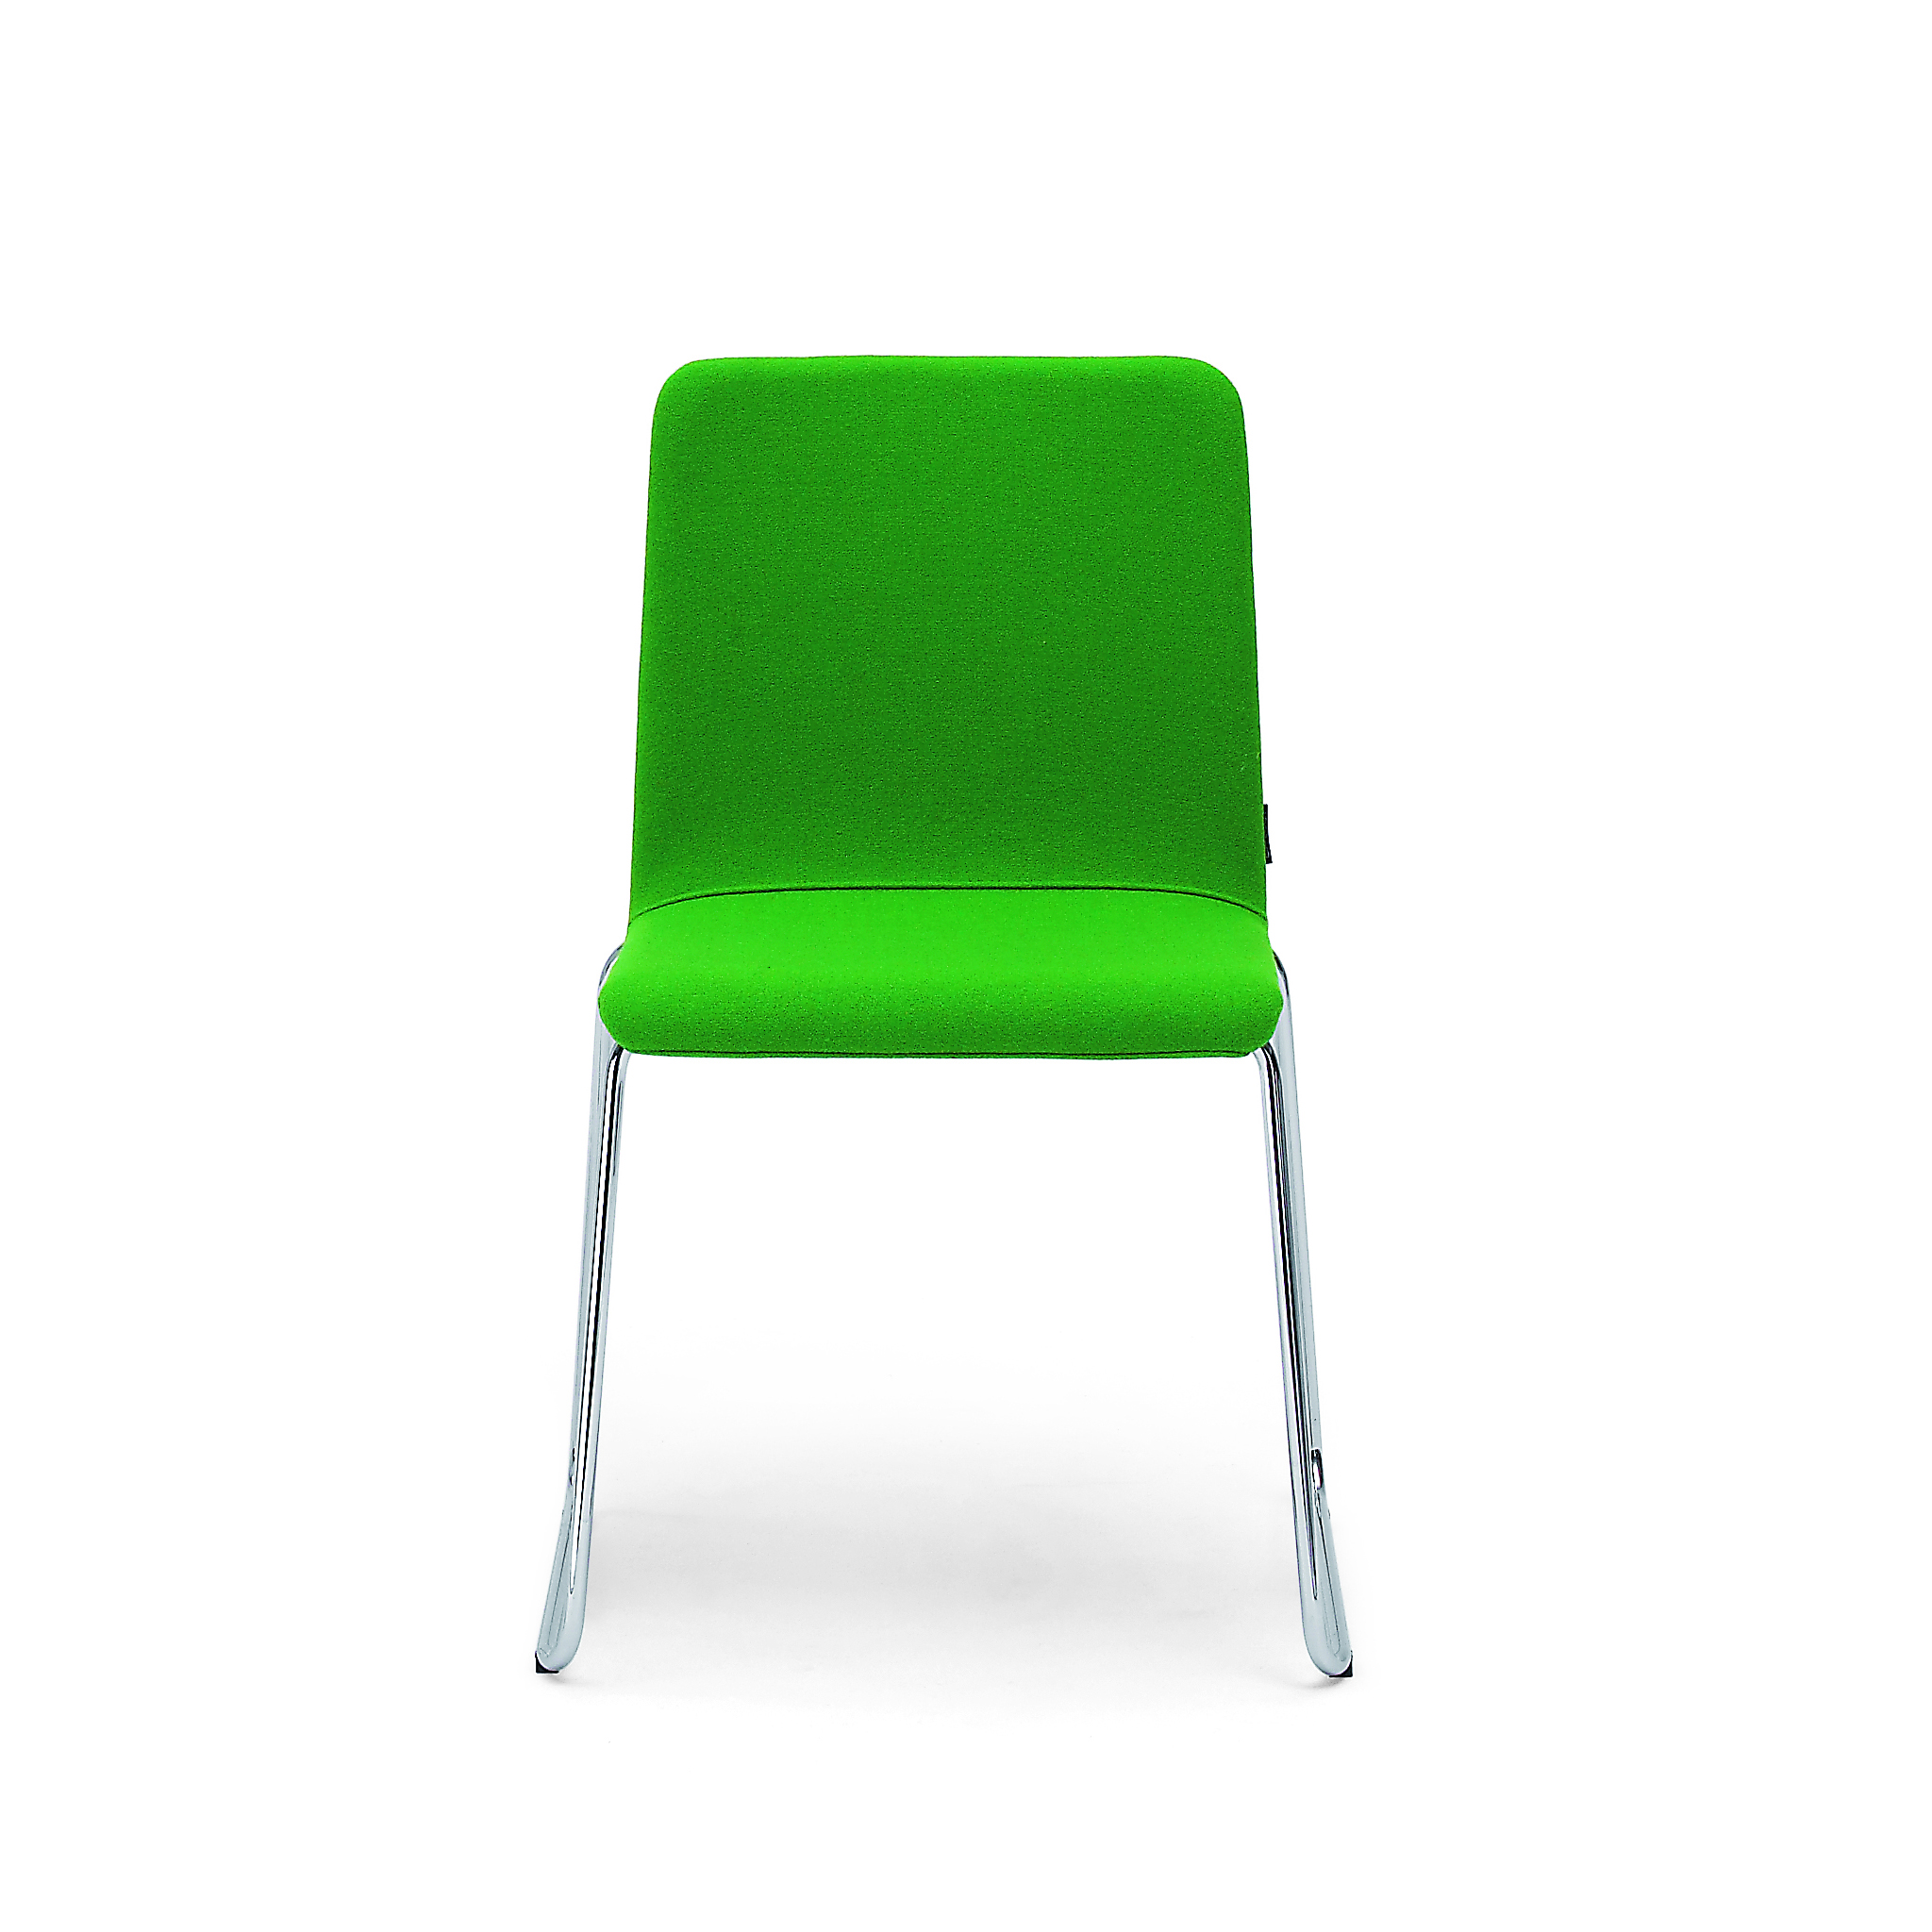 Mono Light, Stackable chair | Offecct